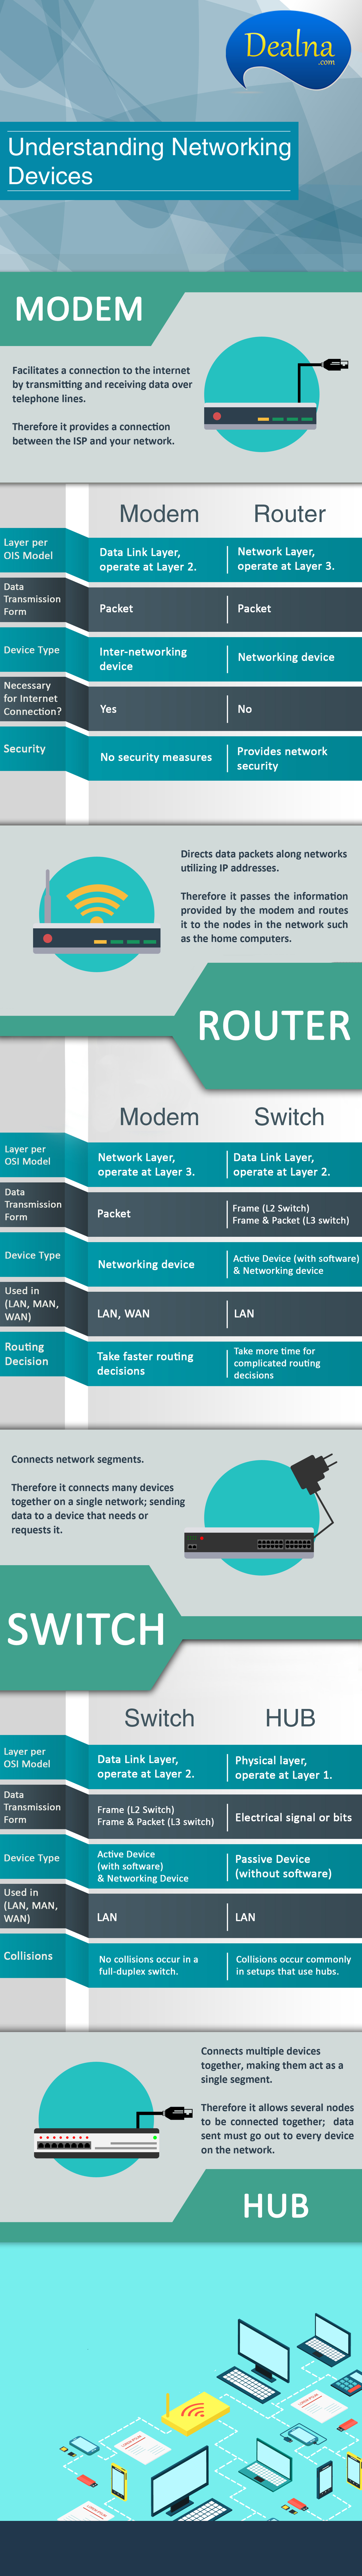 Computer Networking: Modems, Routers, Switches, & Hubs   Dealna